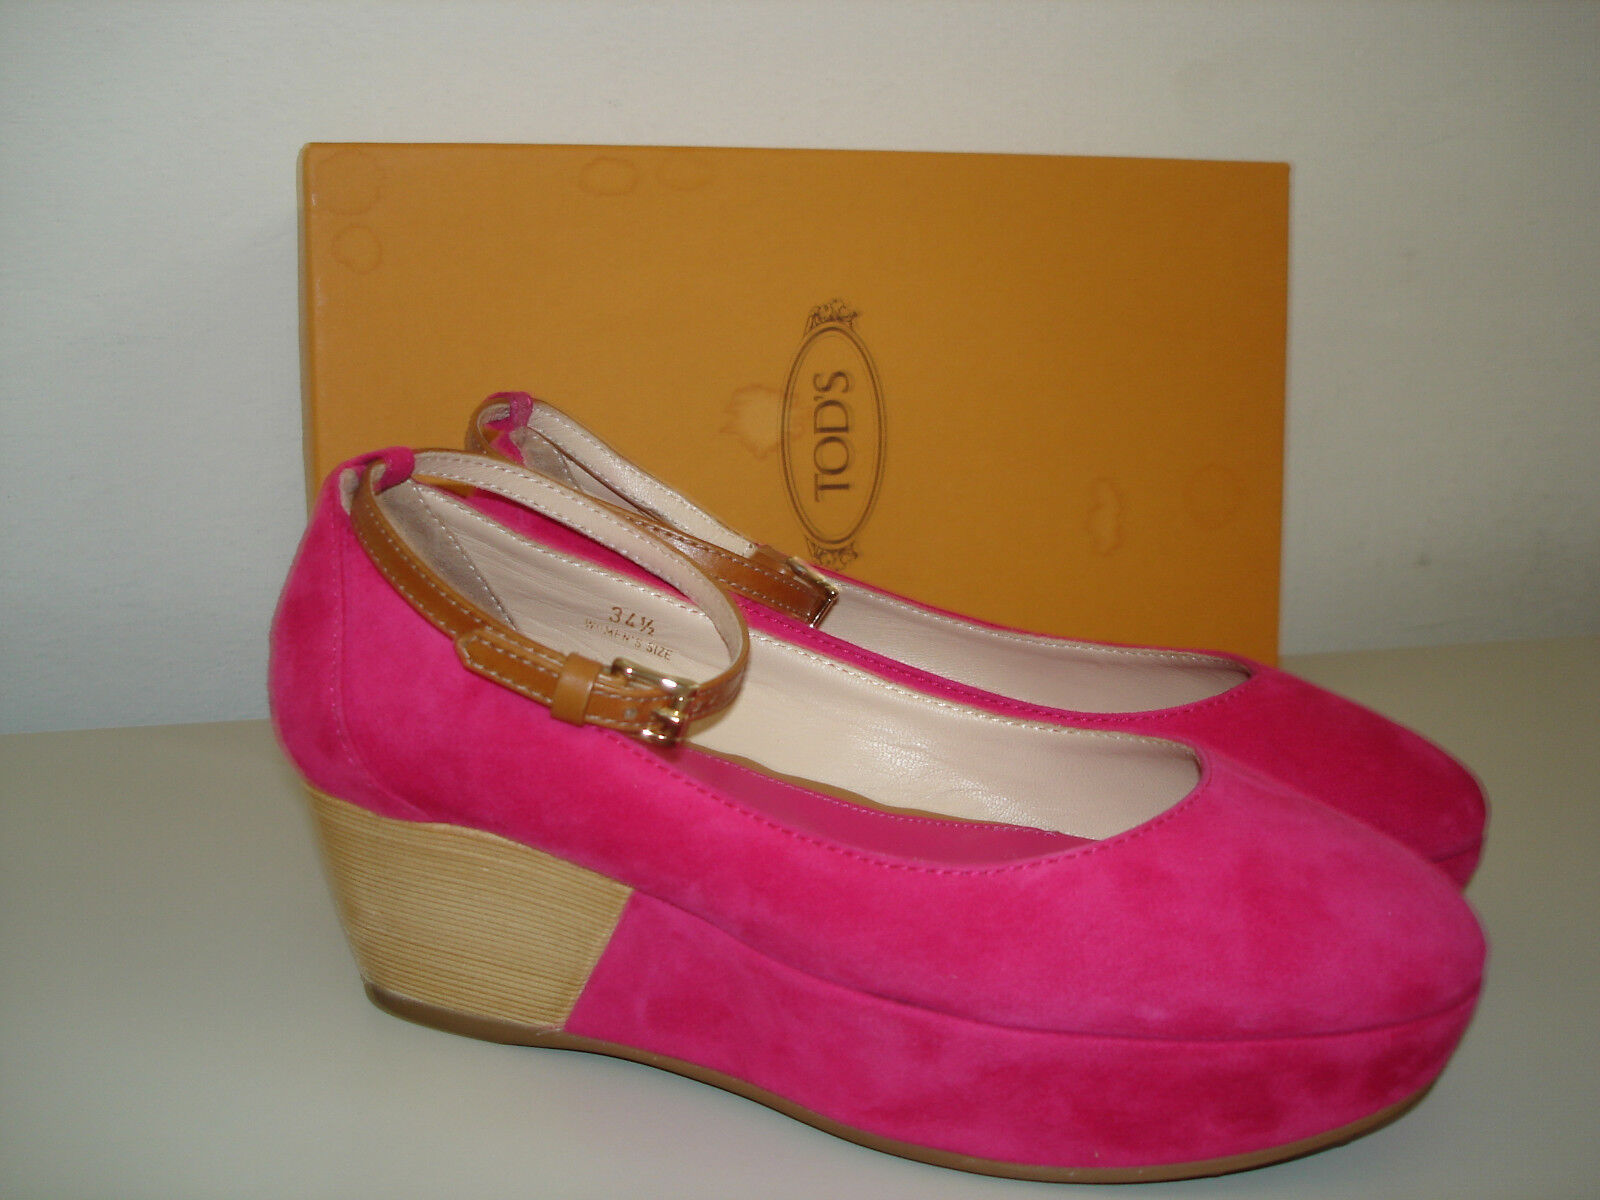 TOD`S Tods Tods TOD`S Pumps Sandalen Wedges Keilabsatz Gr. 35 fuchsia w.NEU / 425,00 Euro 7456f6